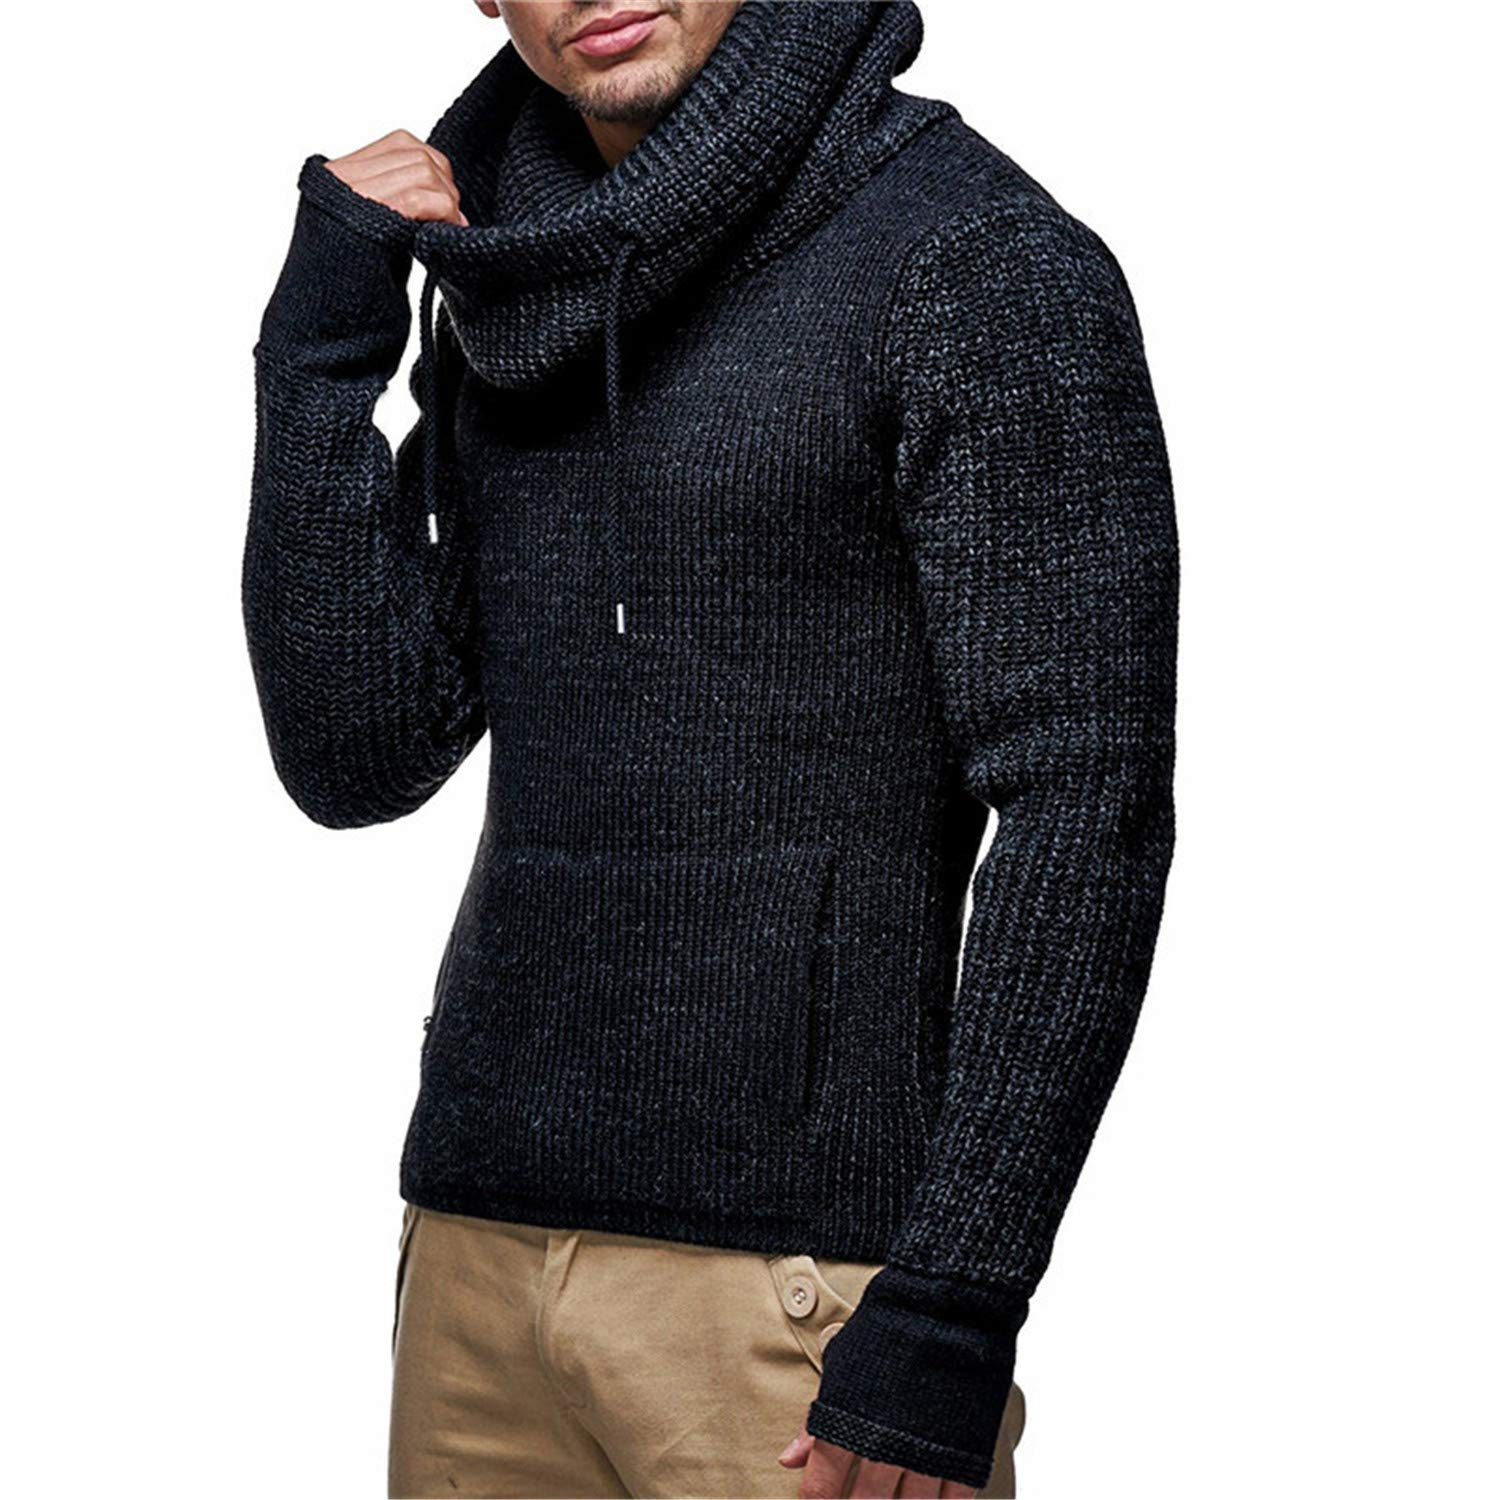 568589949 2019 New Pullover Sweaters Men Sweater Autumn Winter Pullovers Even Gloves  Sweaters Wigeo Knitted Coat Jacket Outwear Mens Slim Fit Pull Homme  Turtleneck ...